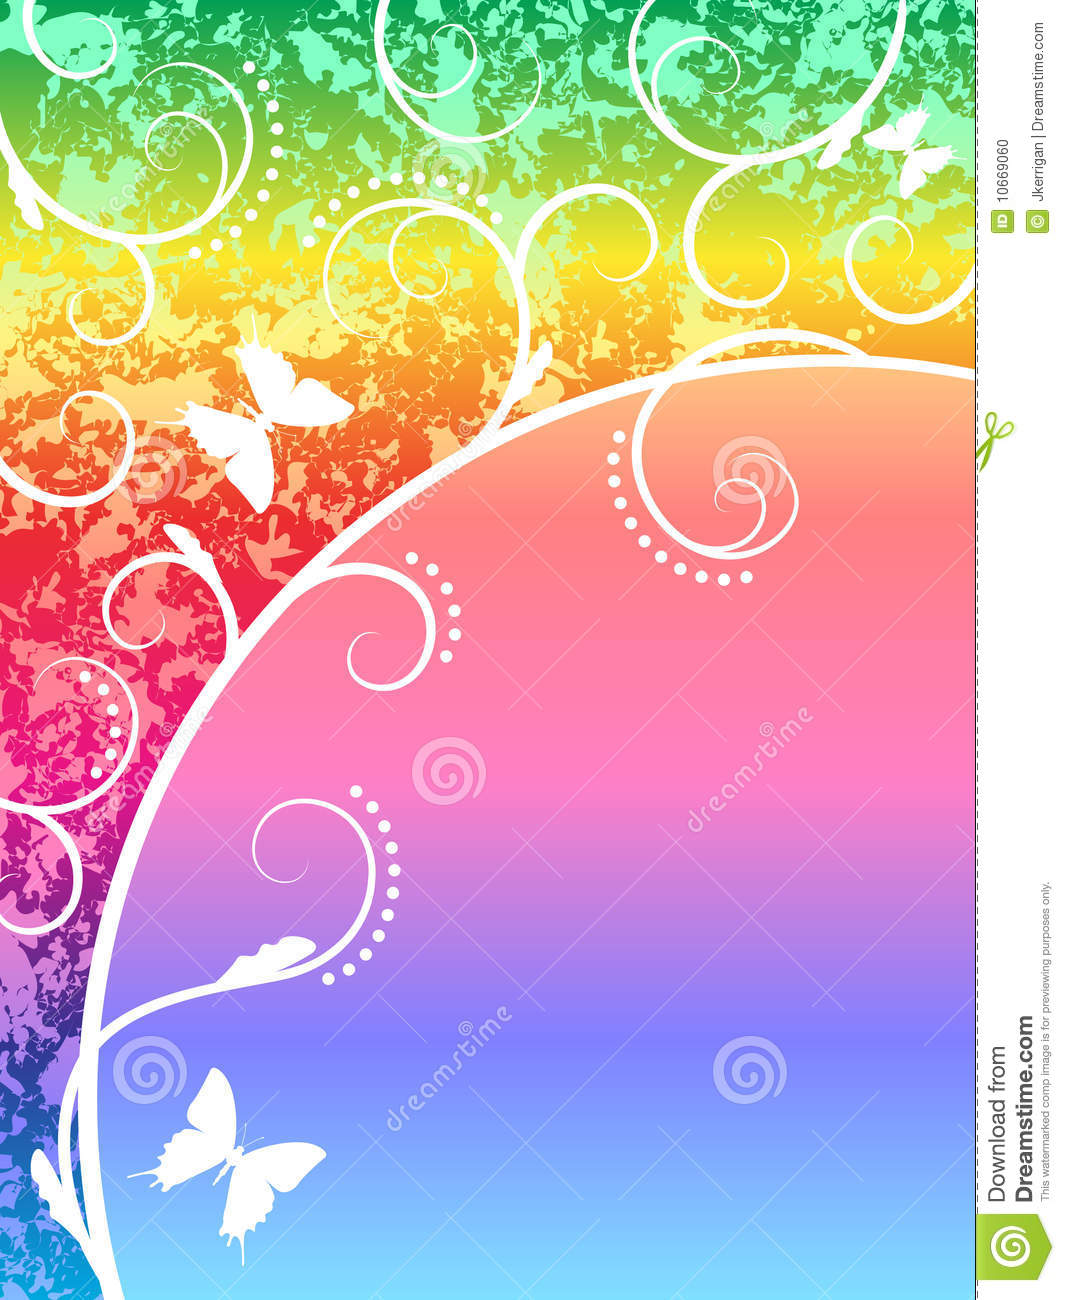 Illustation of rainbow background with butterflies.